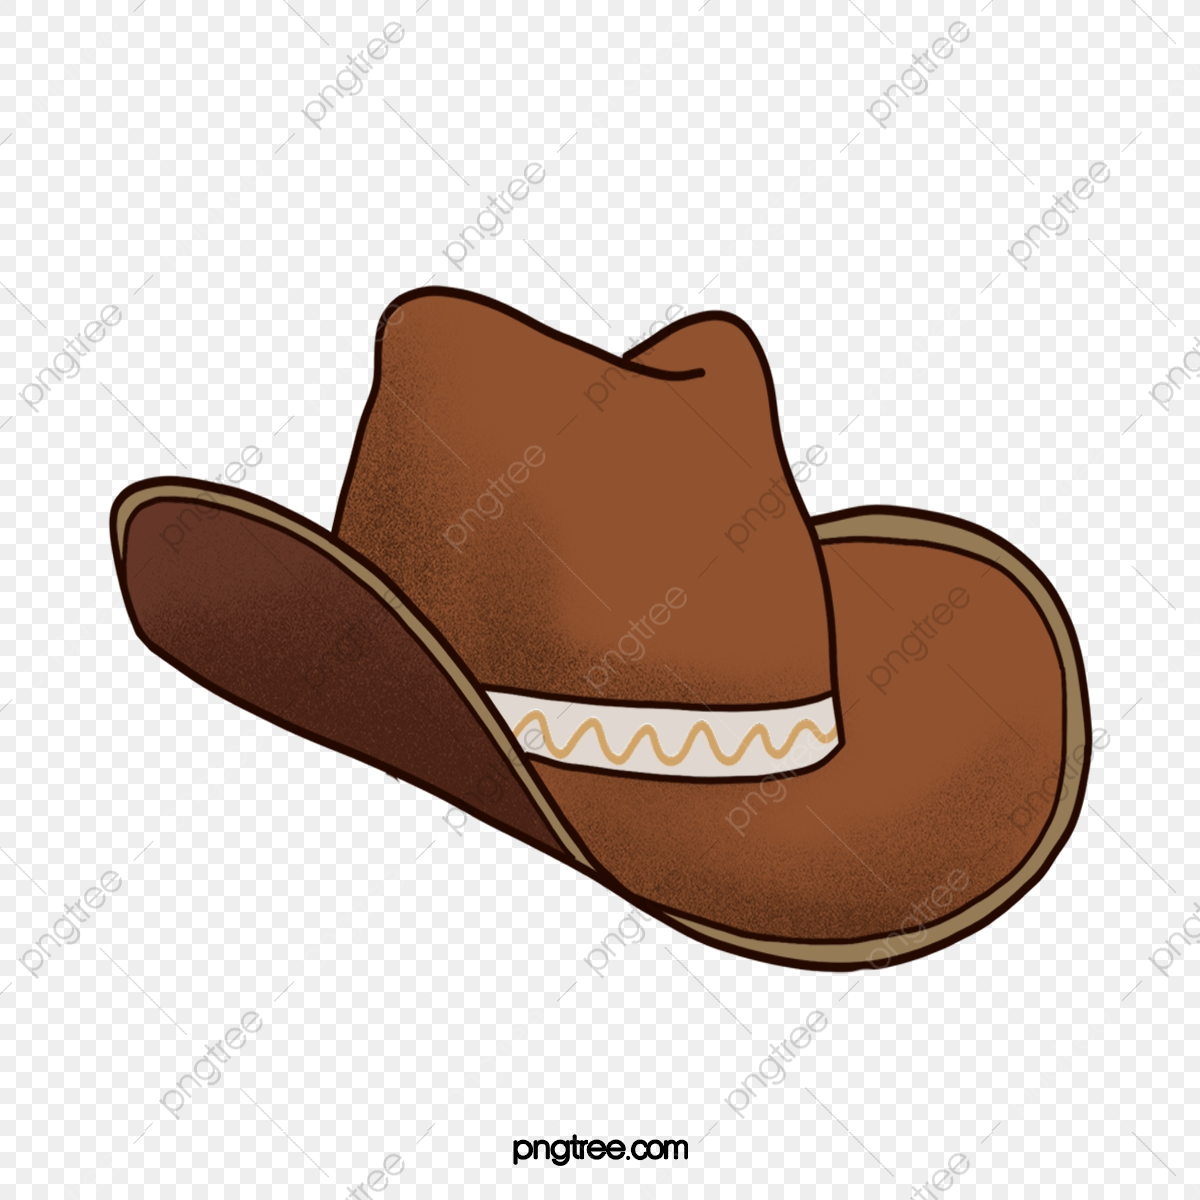 hight resolution of commercial use resource upgrade to premium plan and get license authorization upgradenow brown cowboy hat cowboy clipart